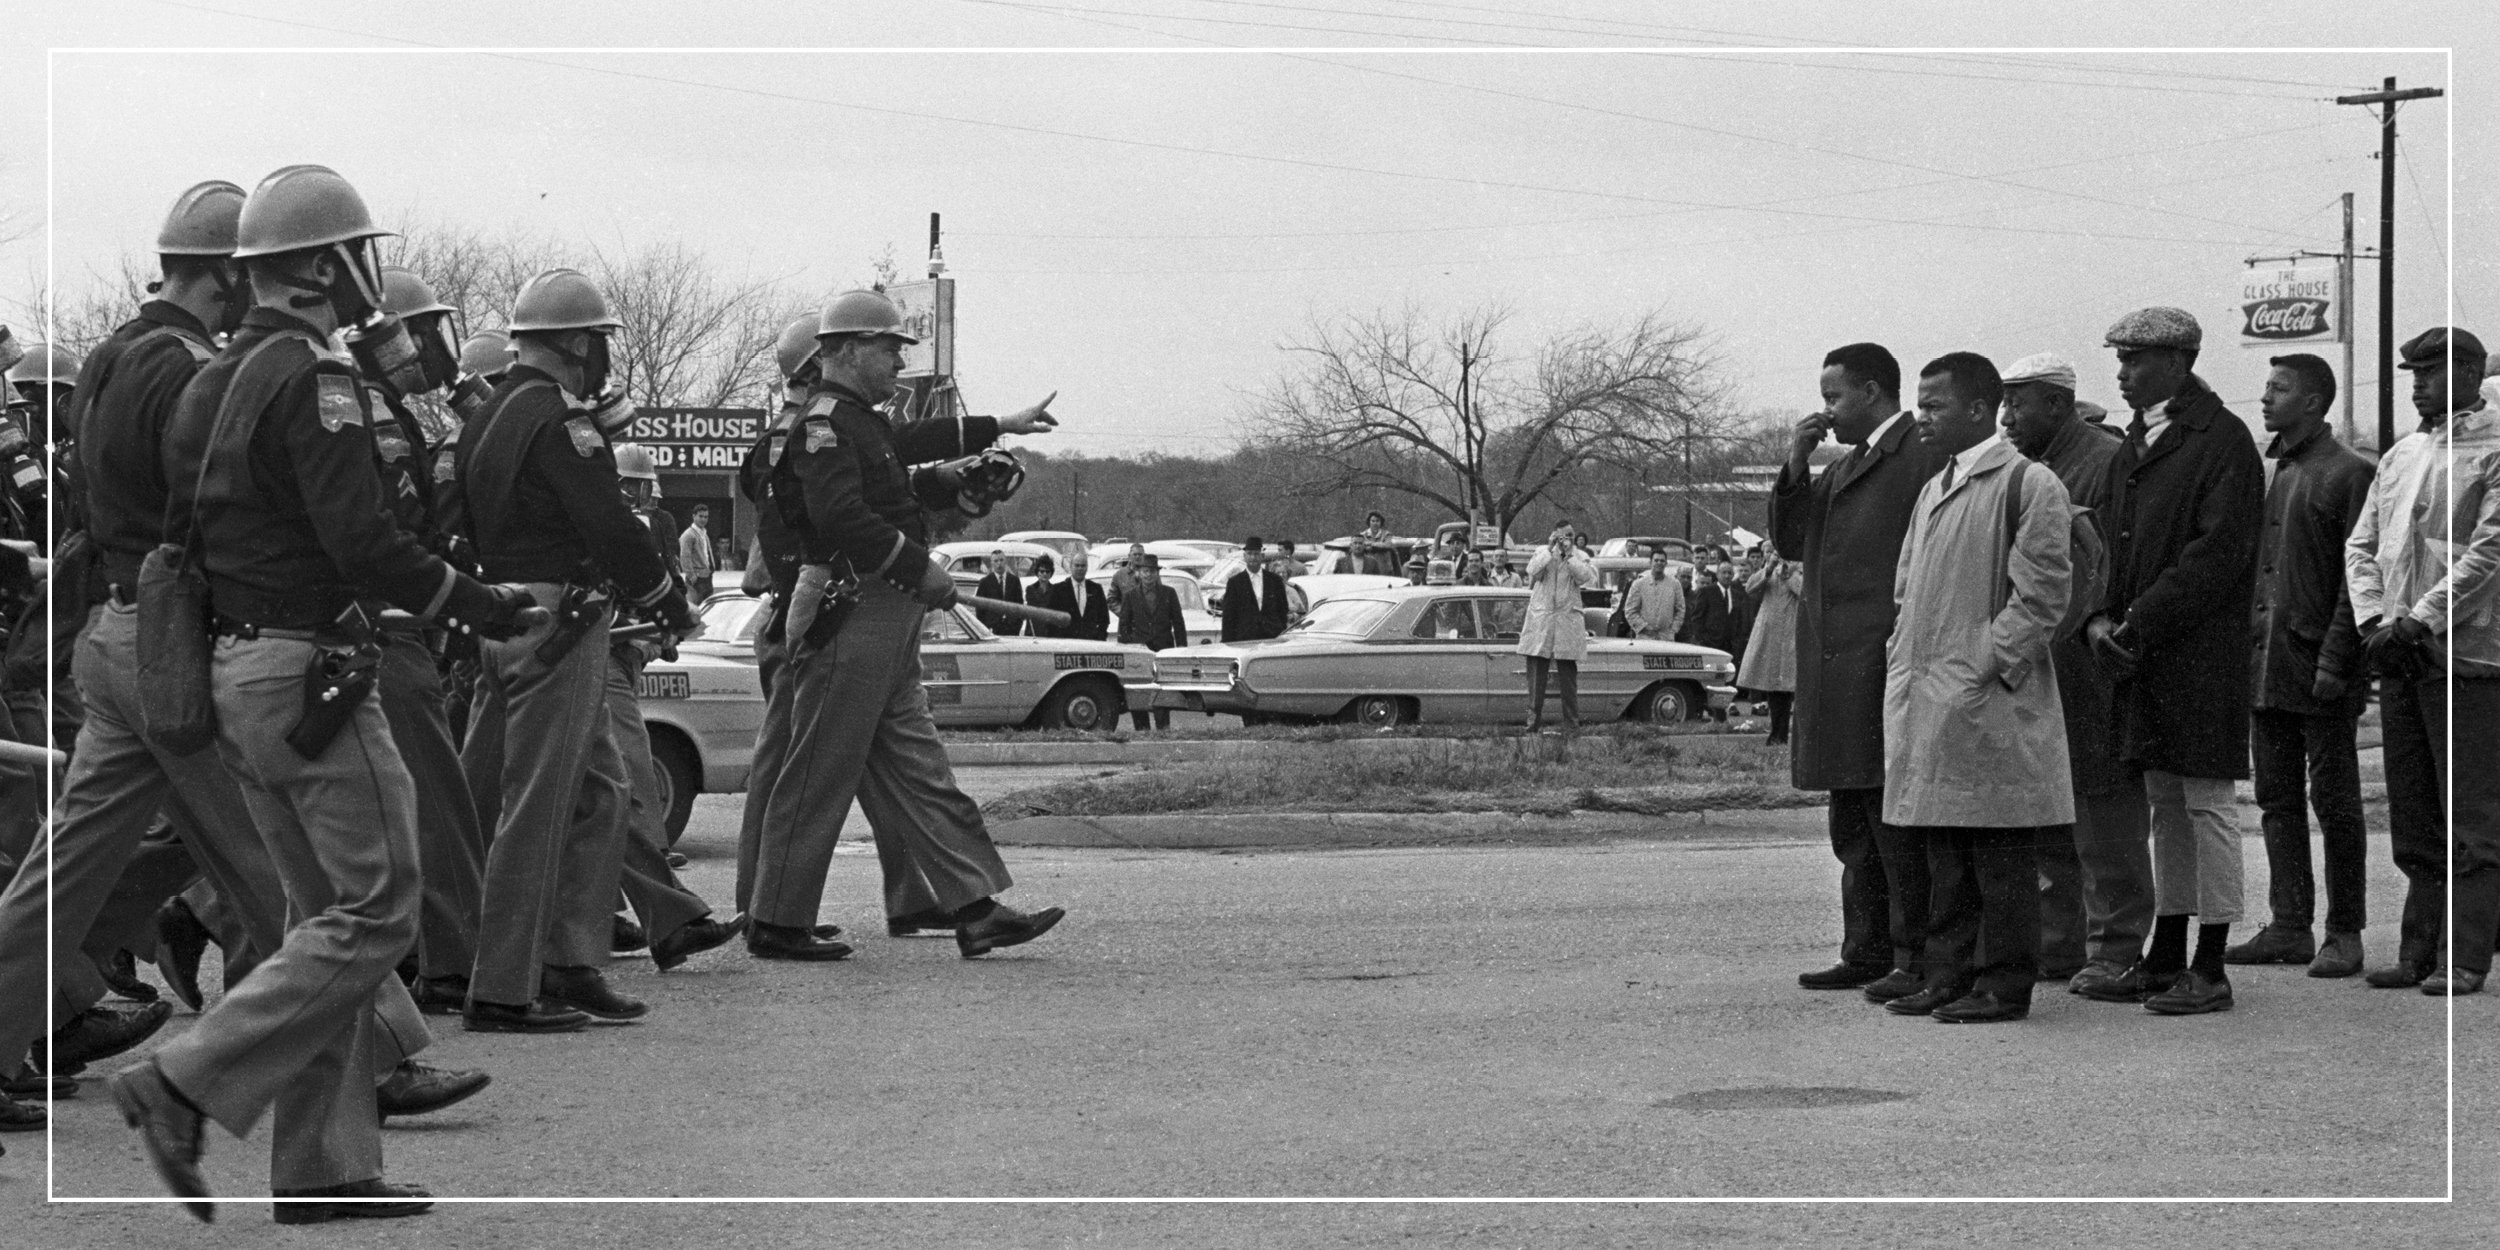 photo of civil rights activists with police in a standoff